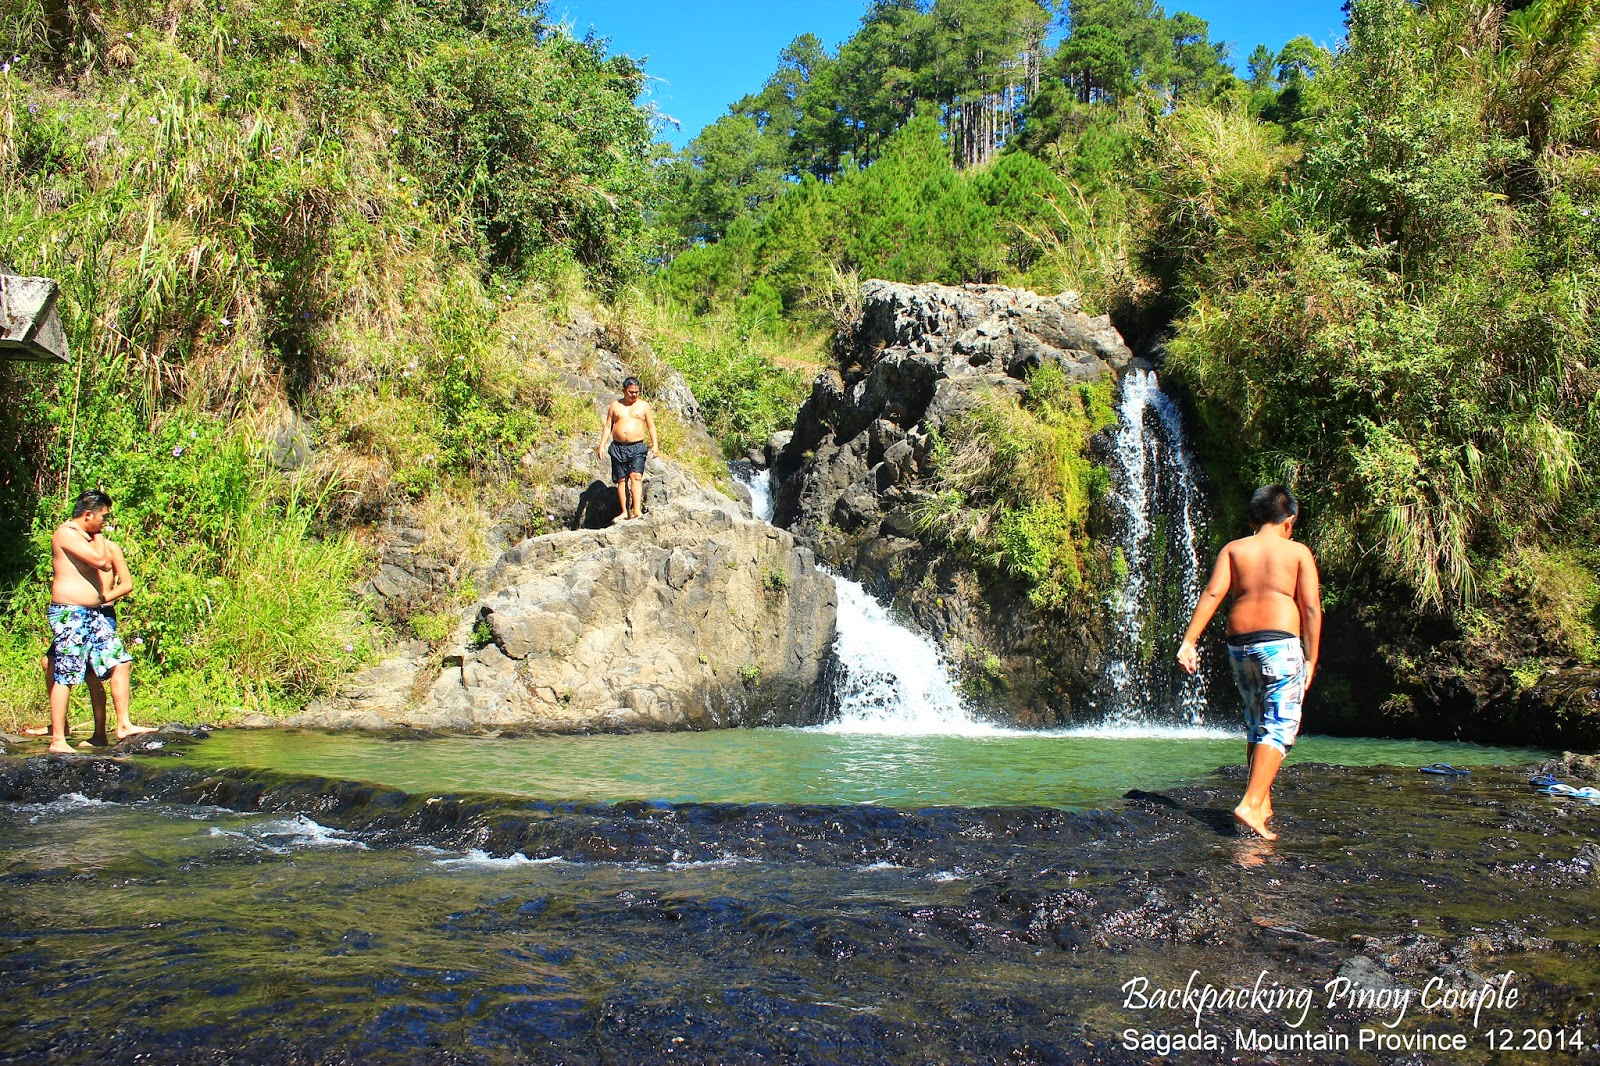 Backpacking Pinoy Couple, Sagada, Mountain Province, Philippines, Bokong Falls